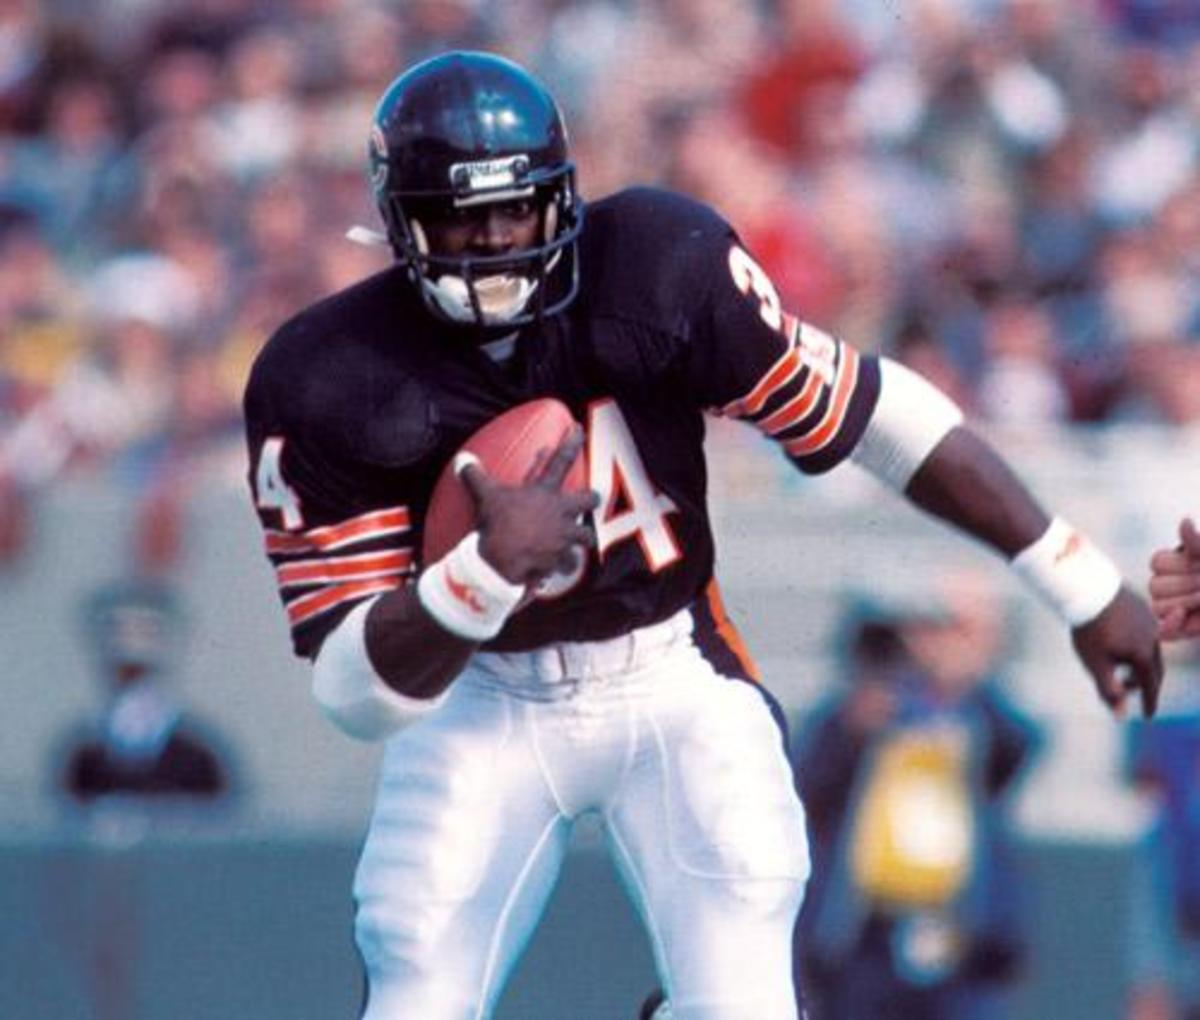 Walter Payton, Chicago Bears 1977 - 1,852 yards.